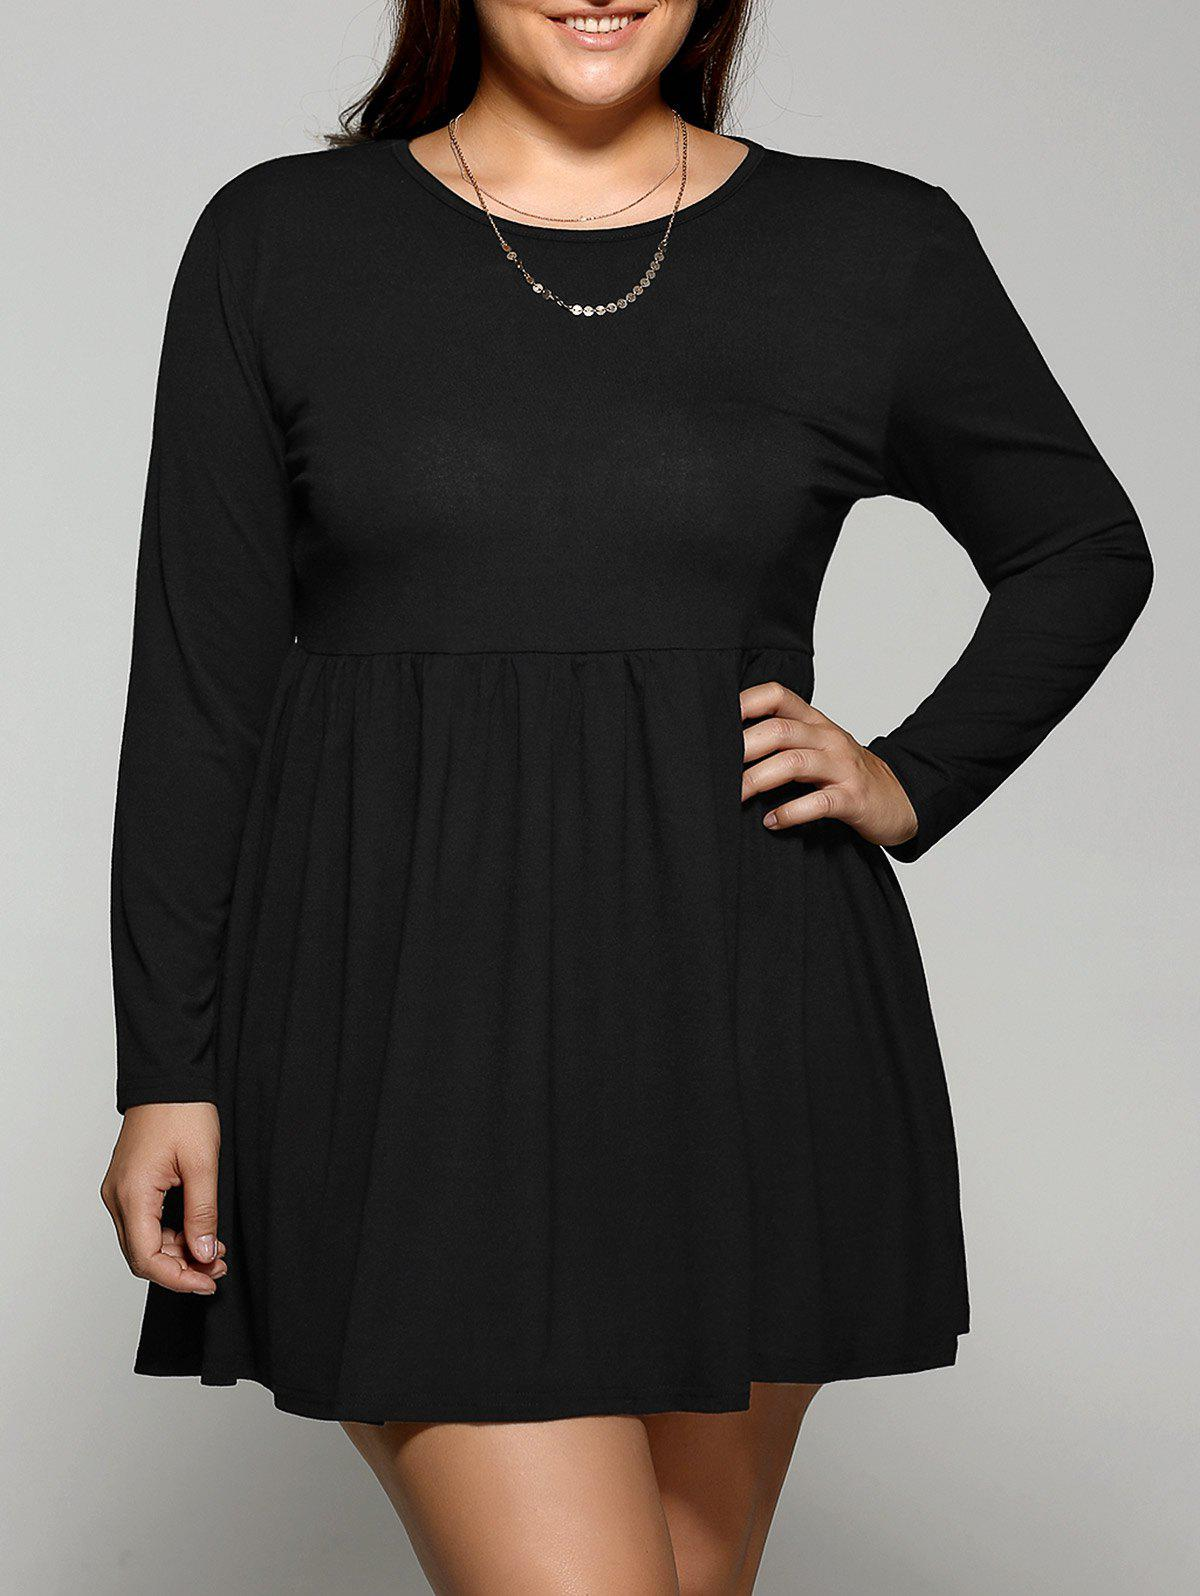 2018 Plus Size Long Sleeve Pleated Mini Skater Dress Black Xl In